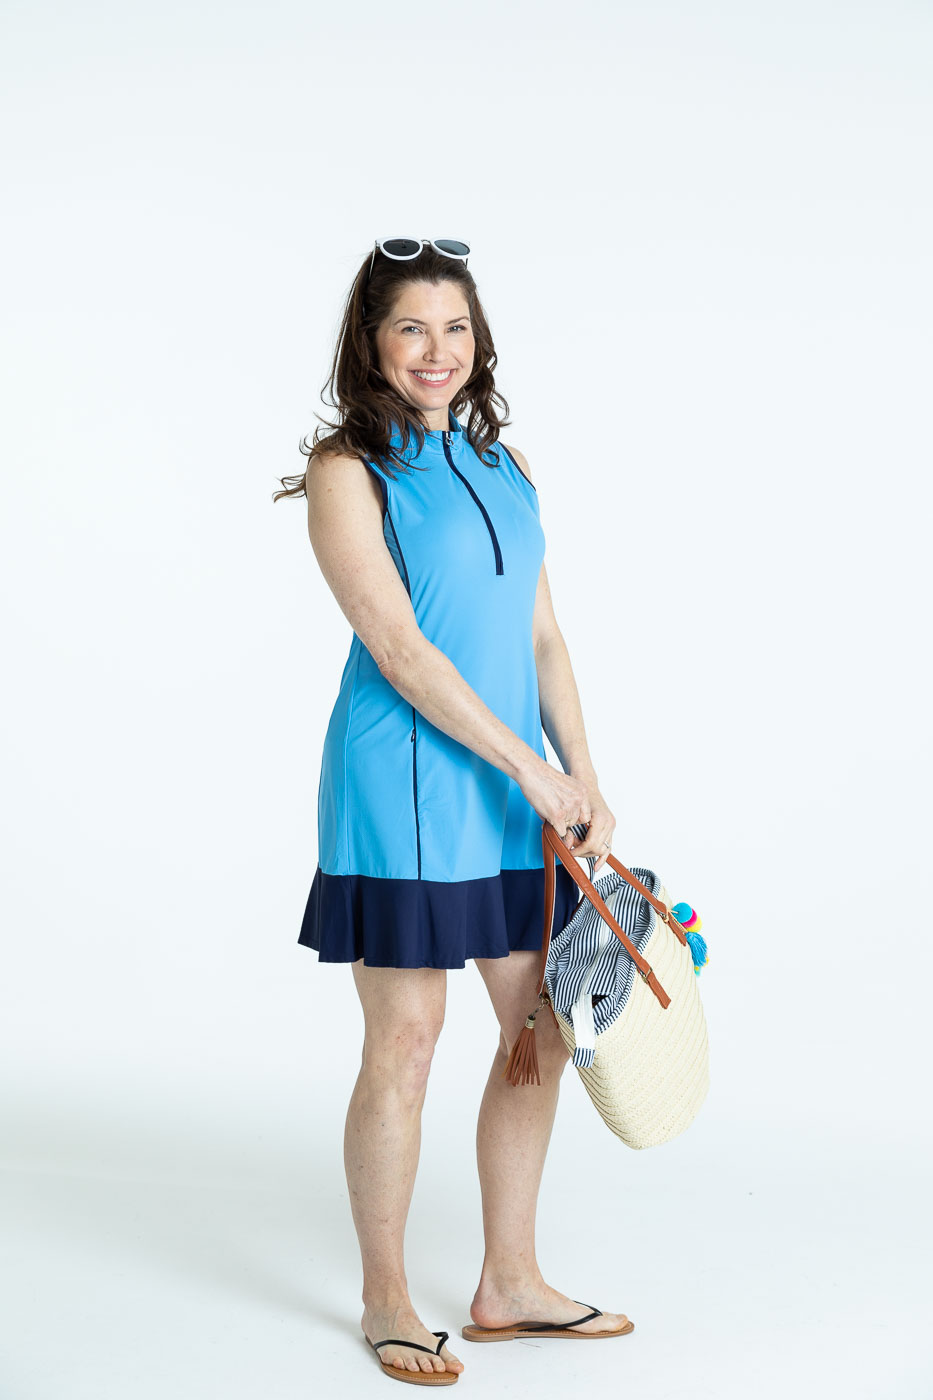 Woman golfer in a cornflower blue Fit and Flare sleeveless golf dress